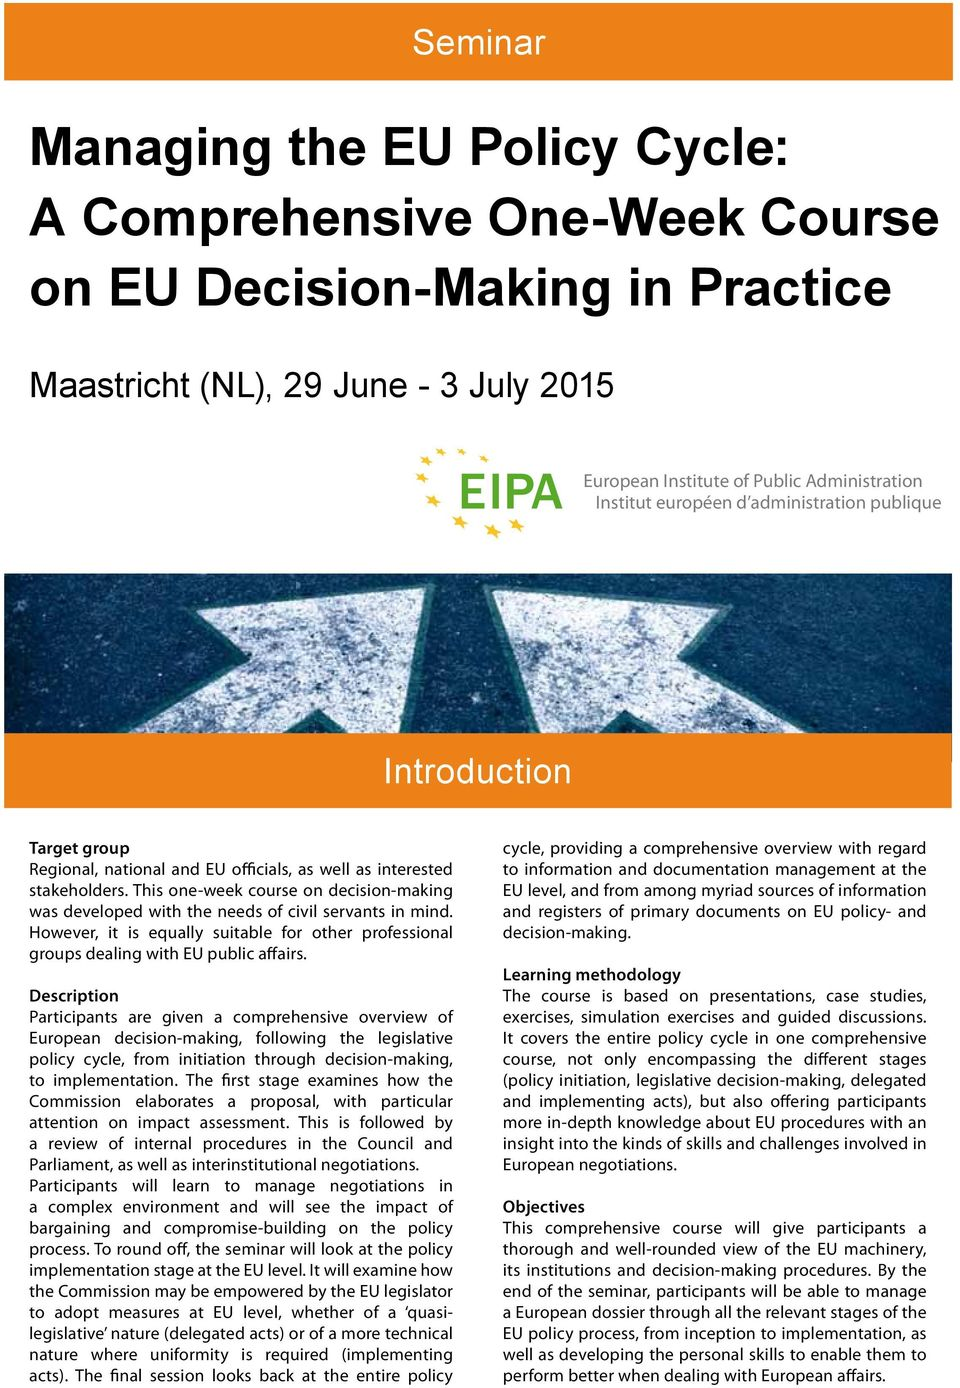 This one-week course on decision-making was developed with the needs of civil servants in mind. However, it is equally suitable for other professional groups dealing with EU public affairs.